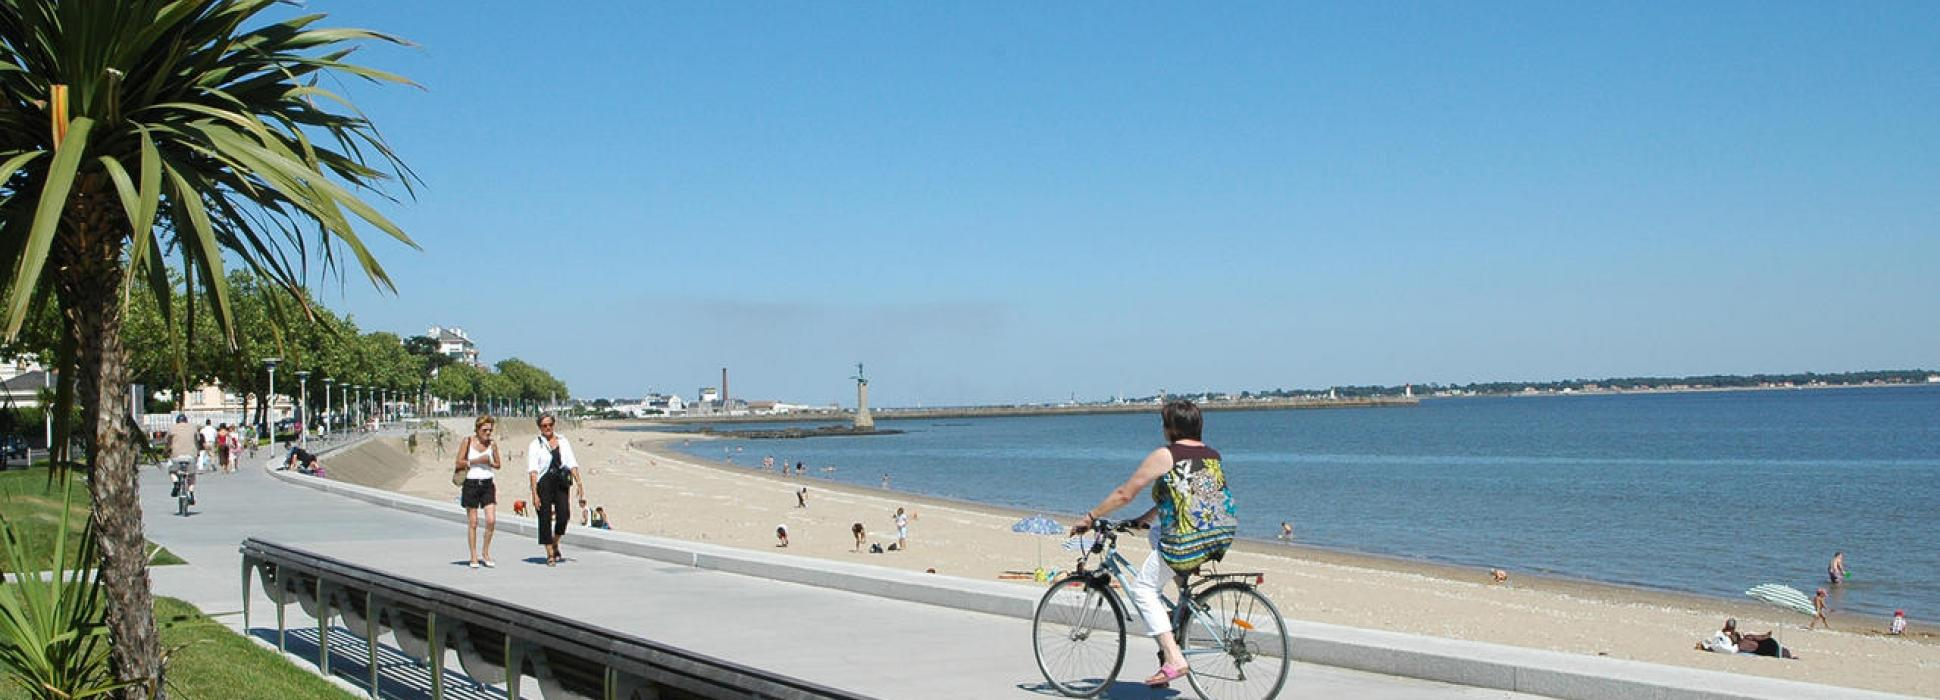 Saint-Nazaire in second place among agglomerations of less than 250,000 inhabitants according to Le Point's ranking